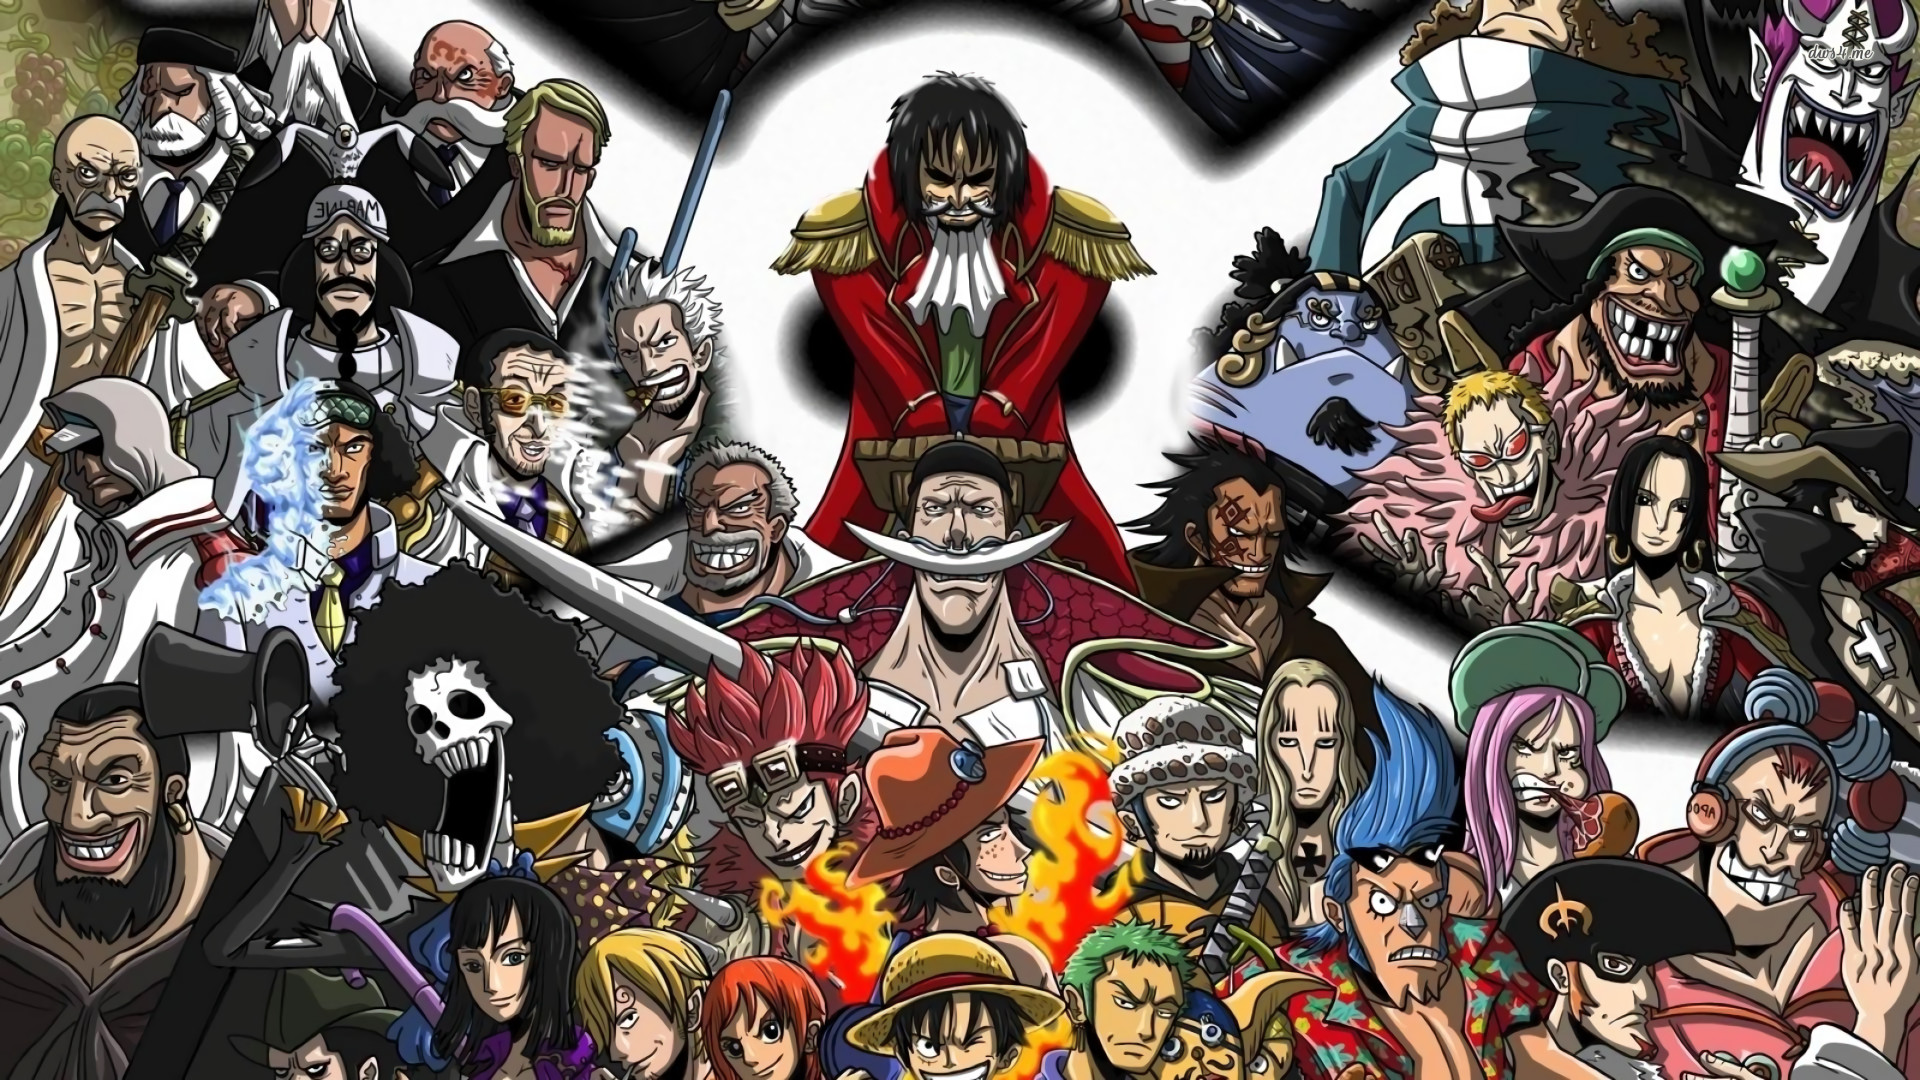 1920x1080 One Piece HD Wallpaper | Background Image |  | ID:678878 -  Wallpaper Abyss